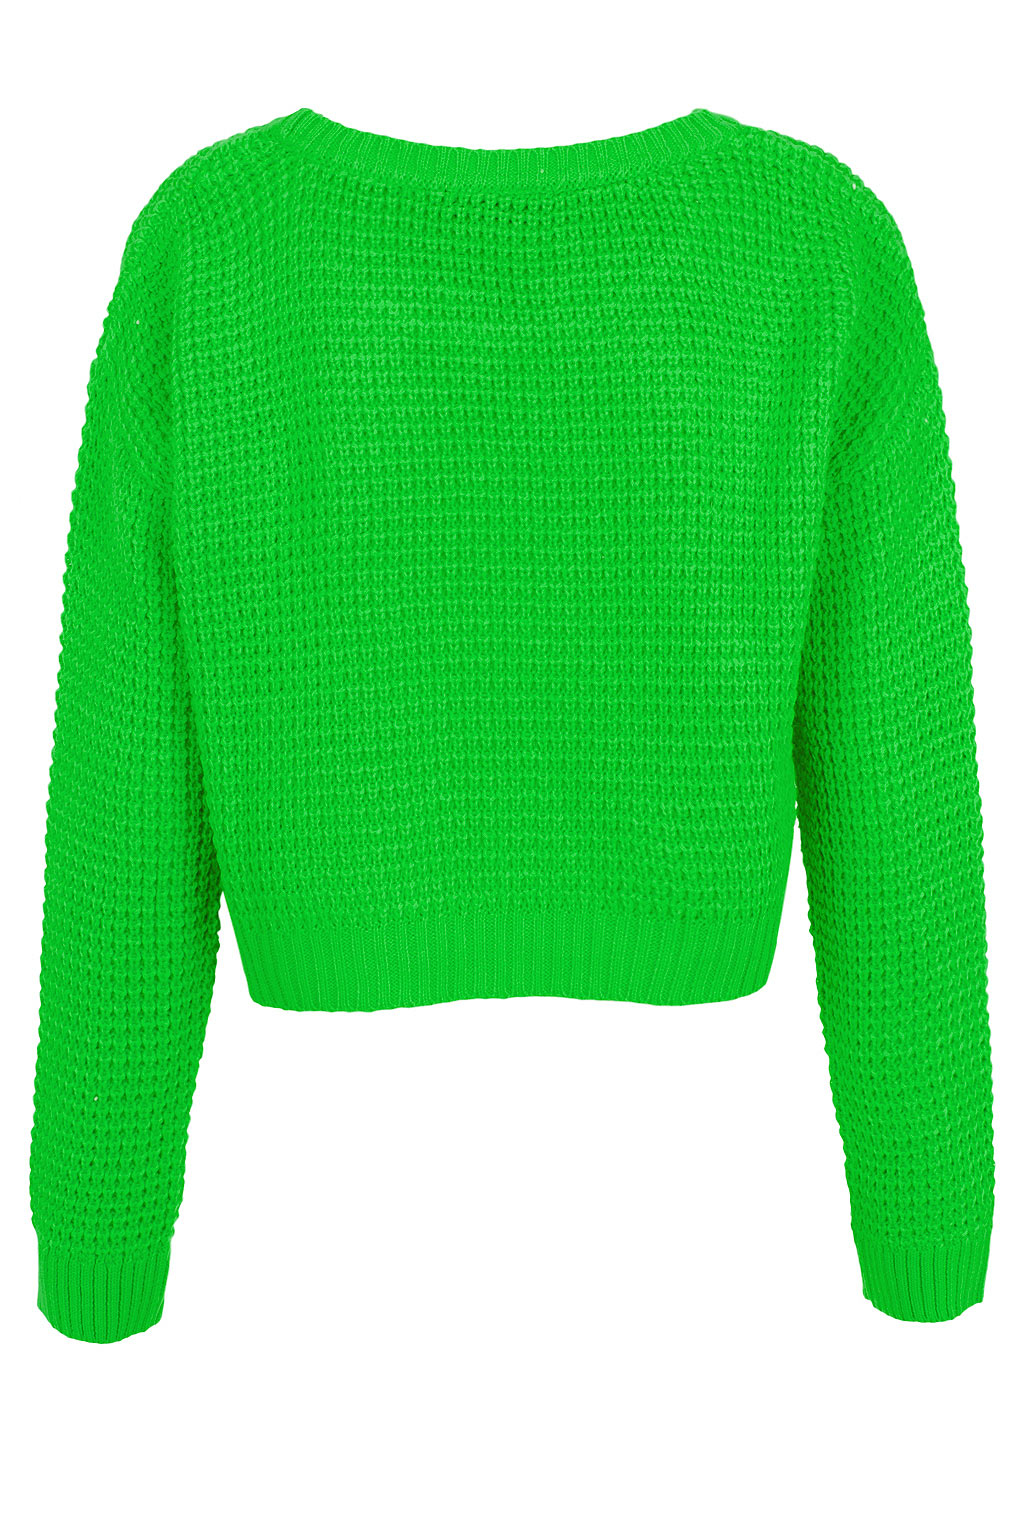 Topshop Cropped Knit Sweater In Bright Green Green Lyst